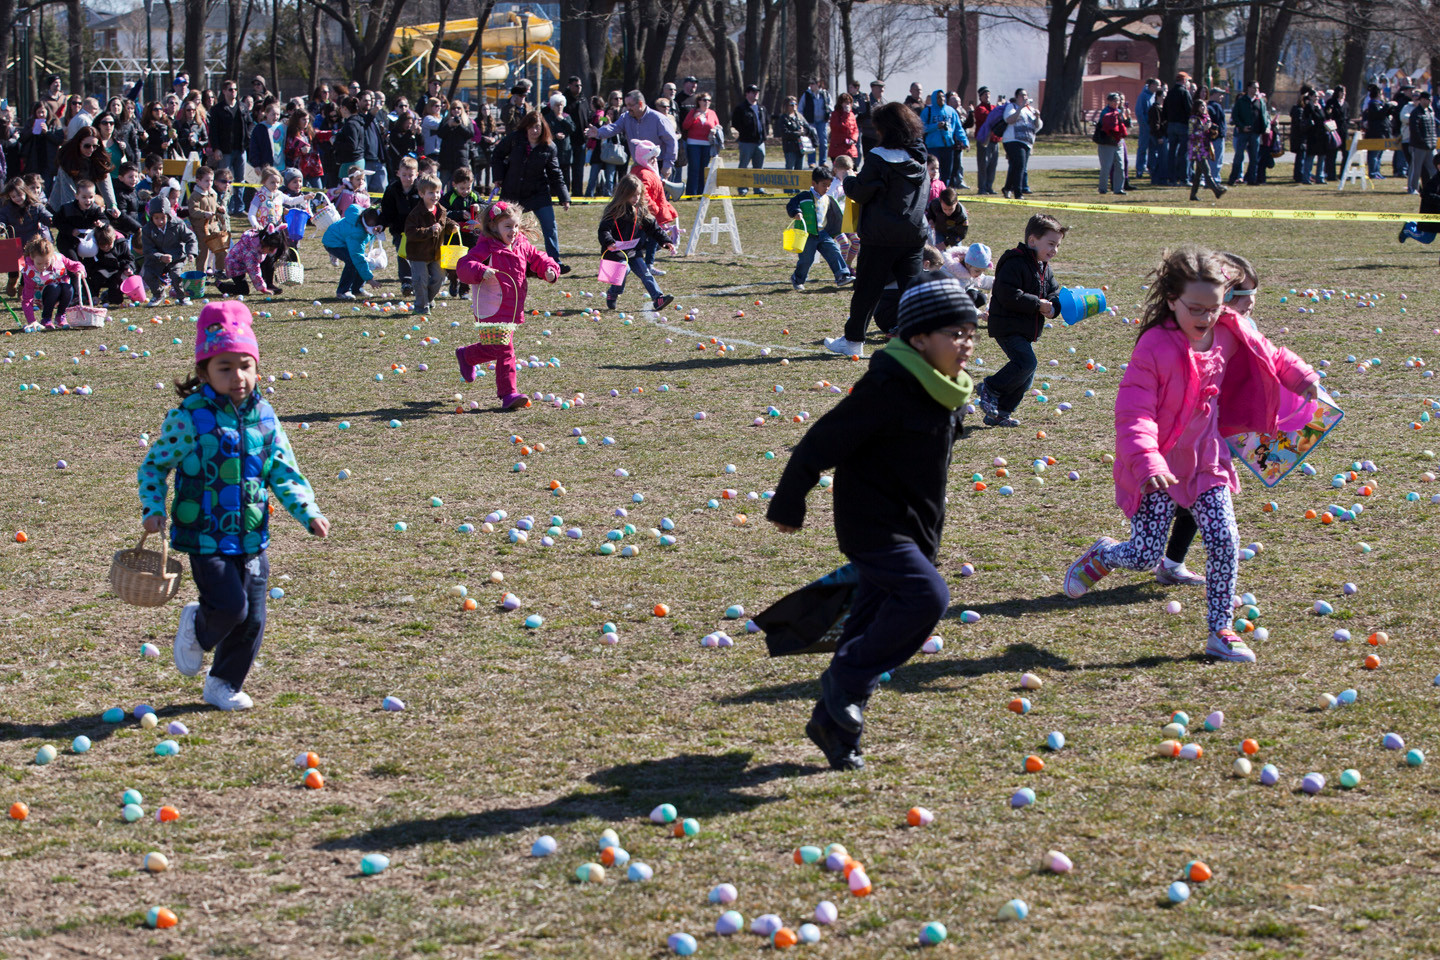 Children raced to collect the most eggs in Greis Park.